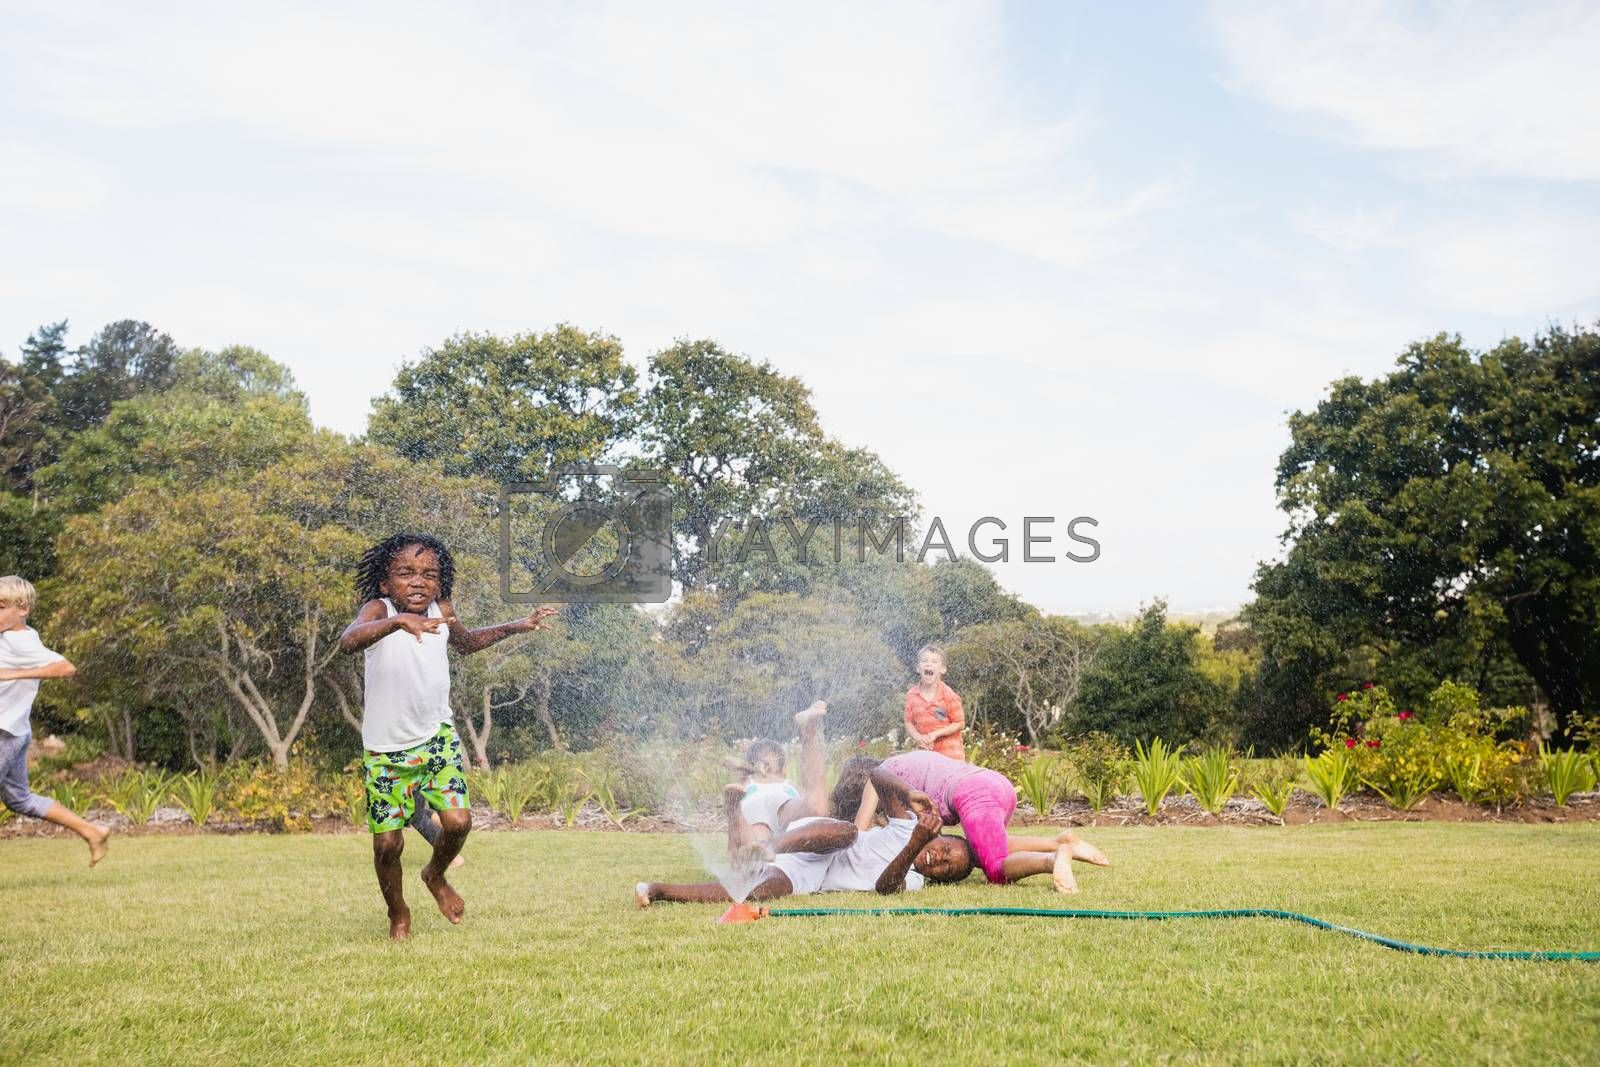 Royalty free image of Kids playing together during a sunny day by Wavebreakmedia